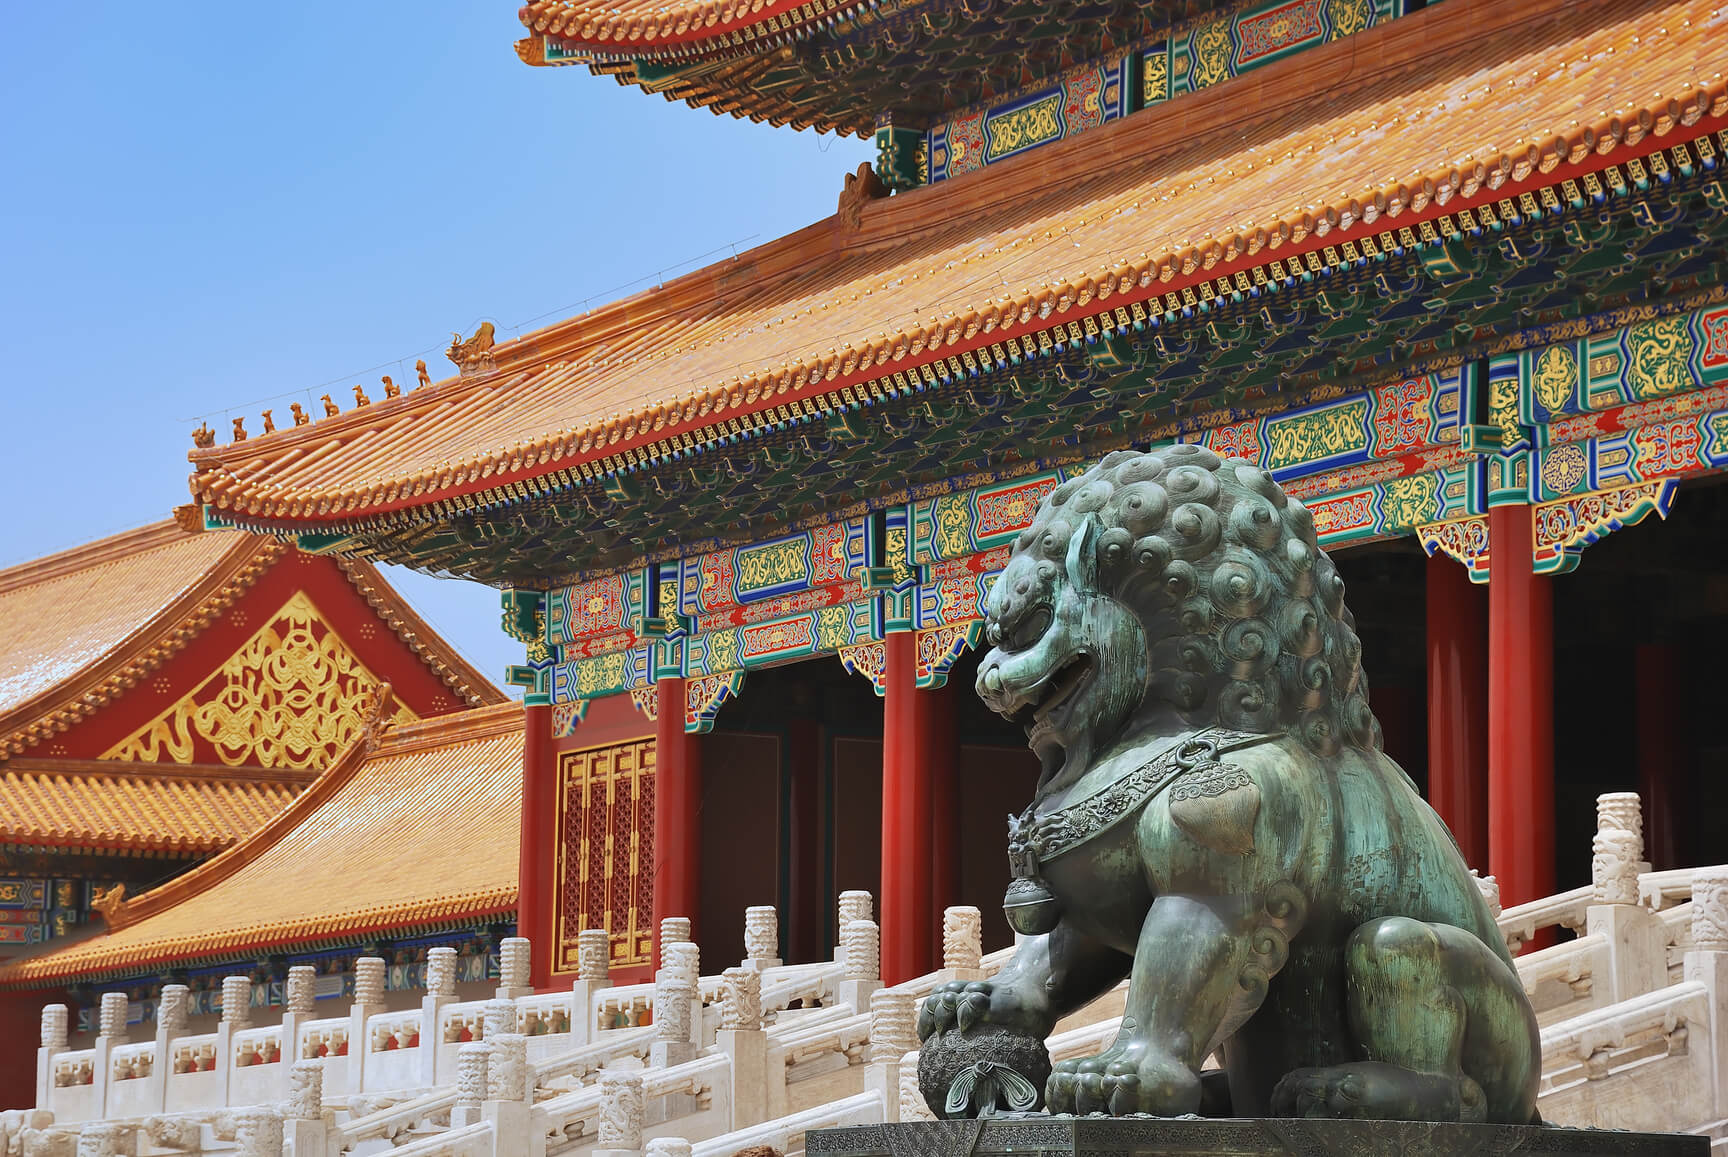 New York to Beijing, China for only $454 roundtrip